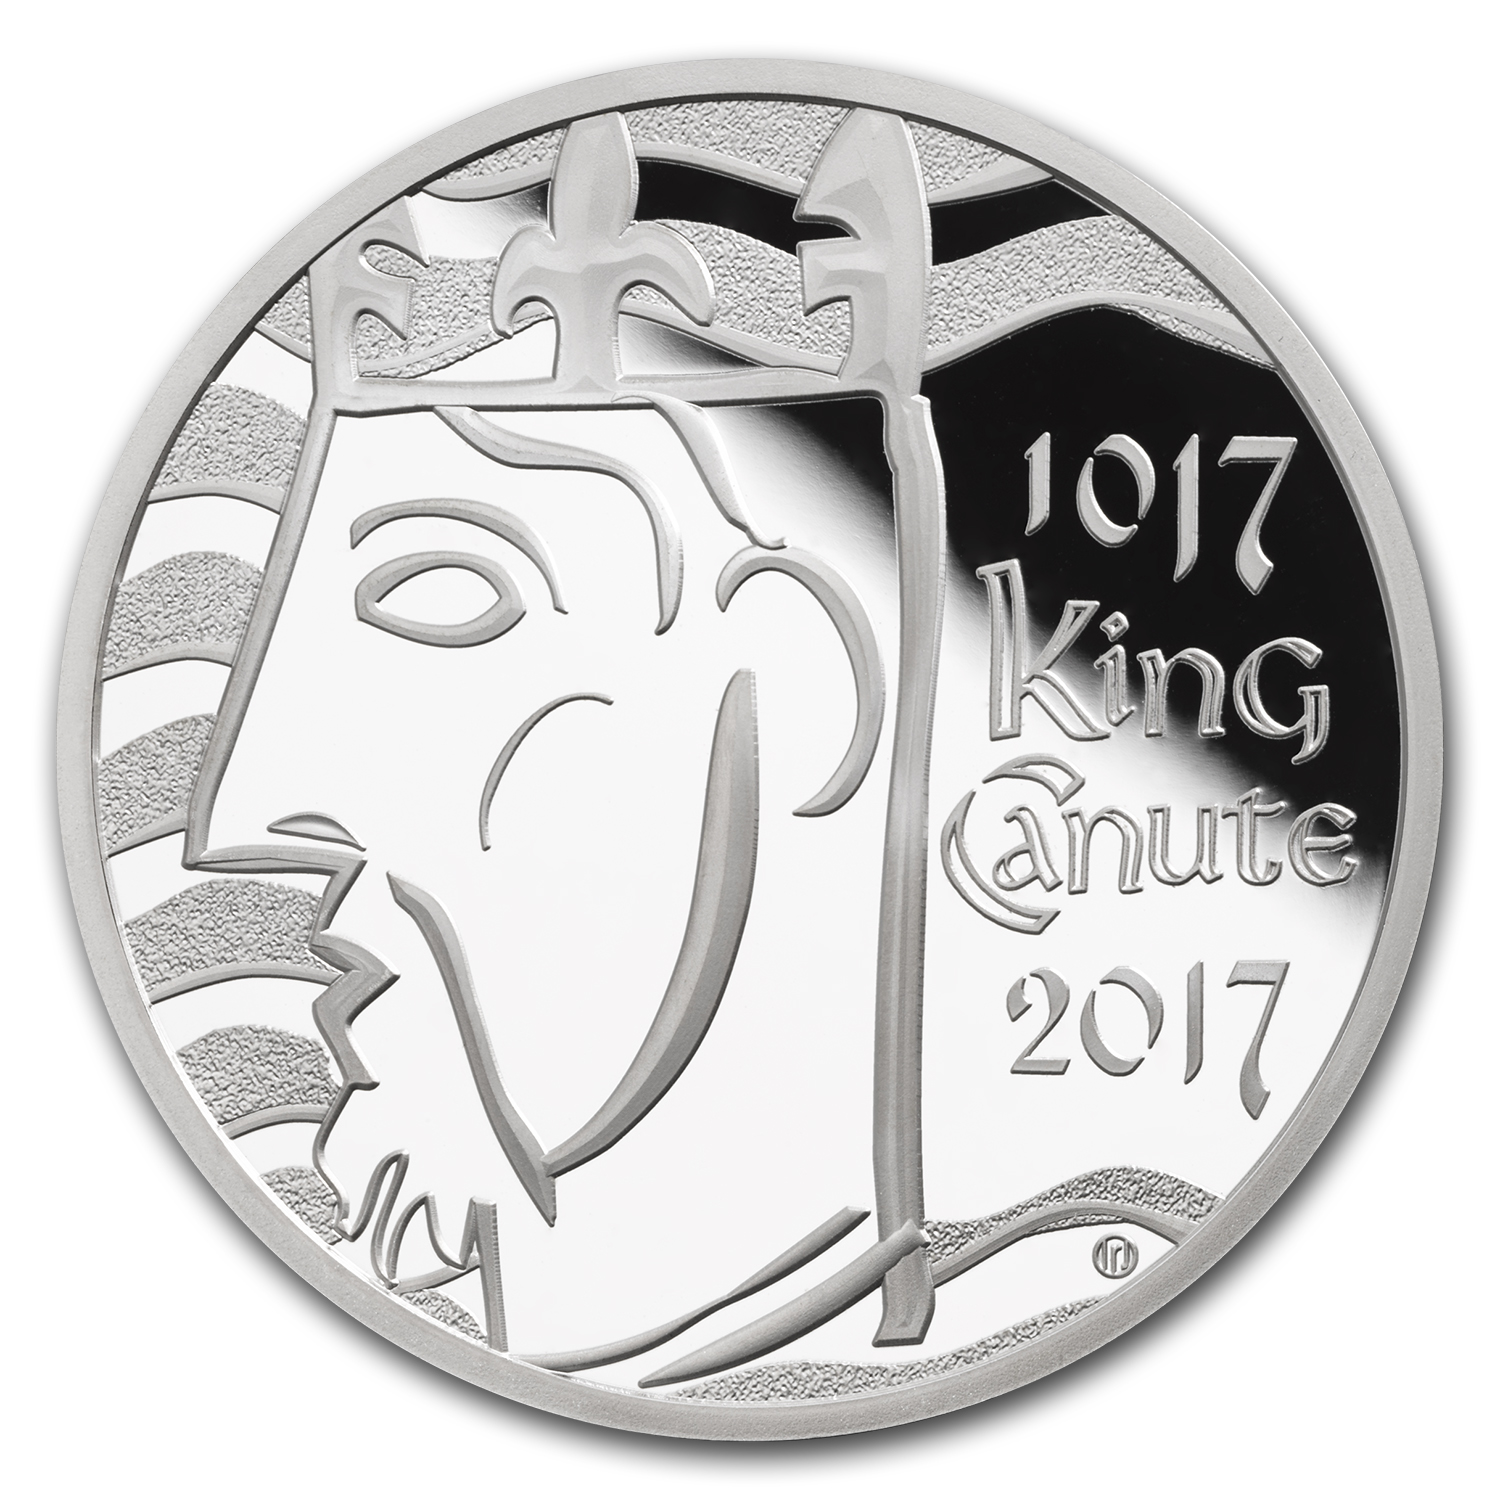 2017 Great Britain £5 Proof Silver Coronation of King Canute